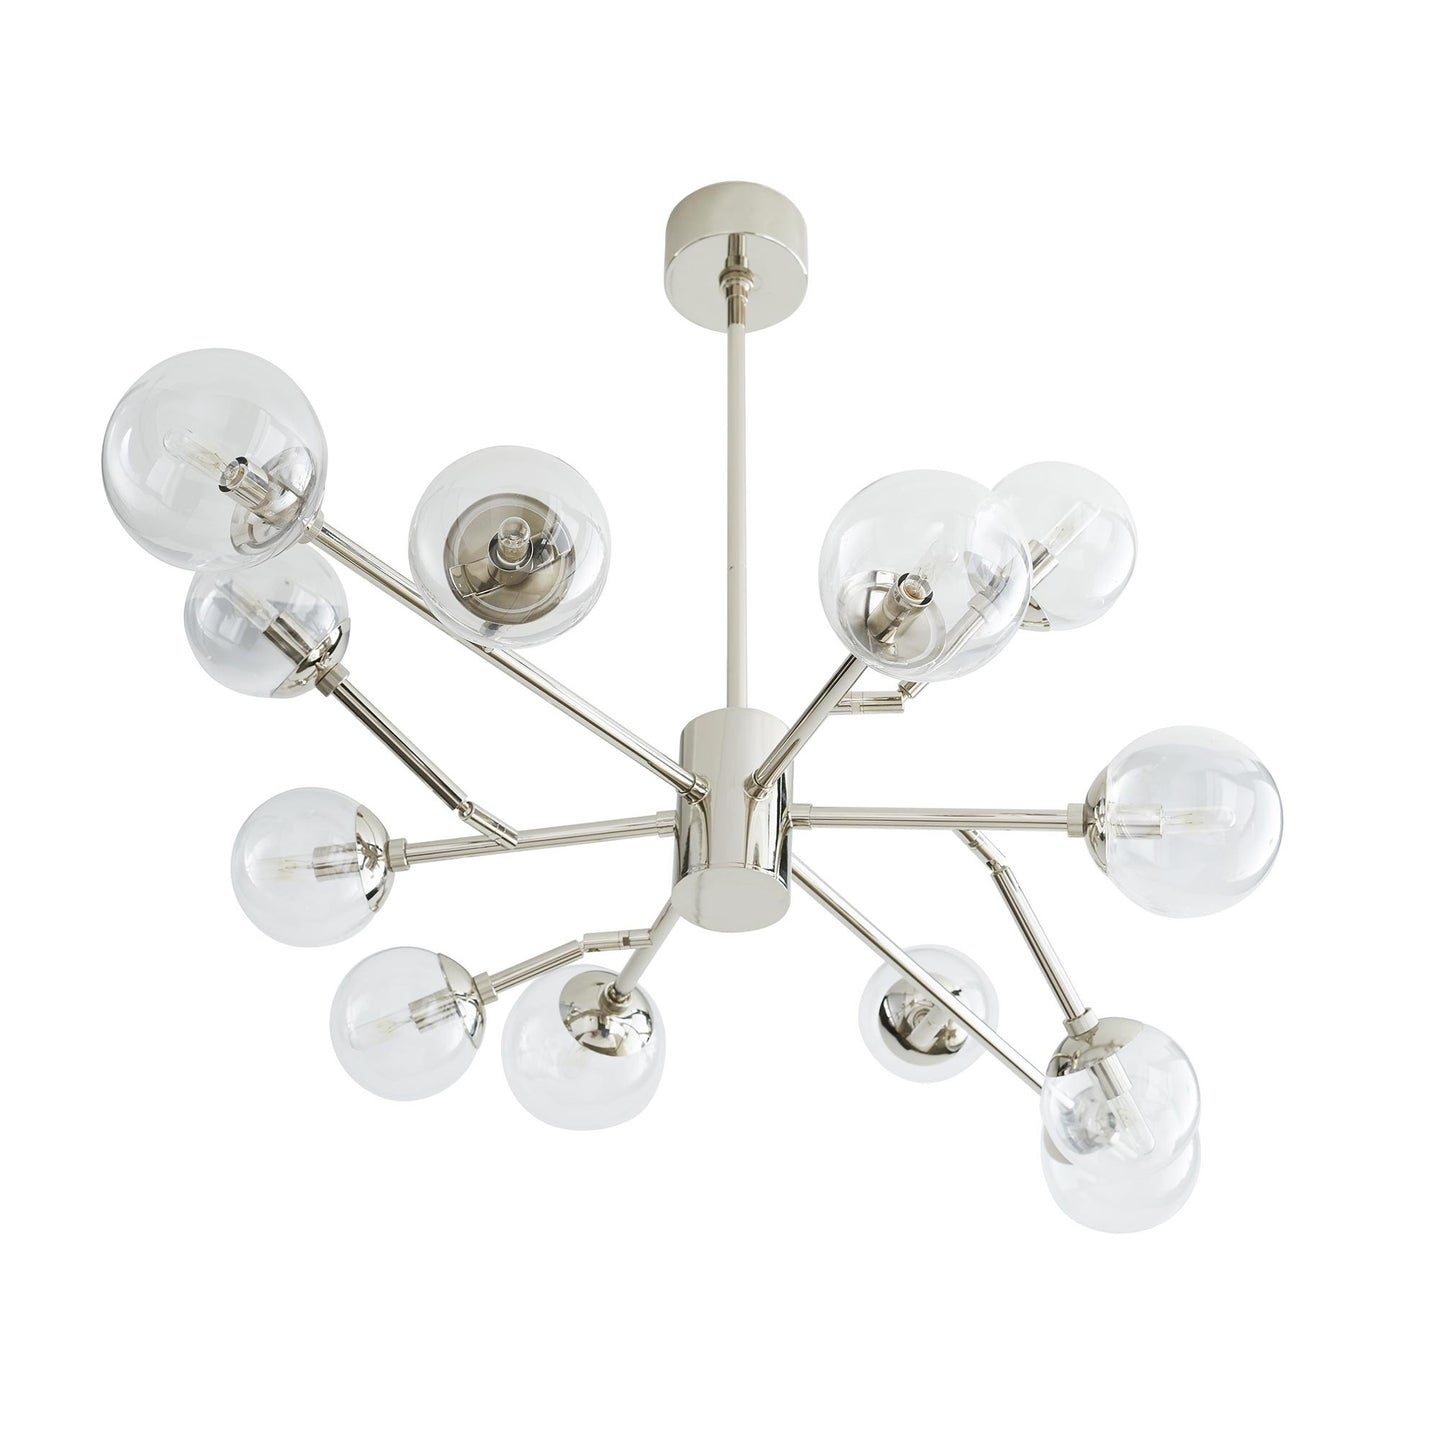 Arteriors Home Dallas Small Chandelier Polished Nickel – CLAYTON